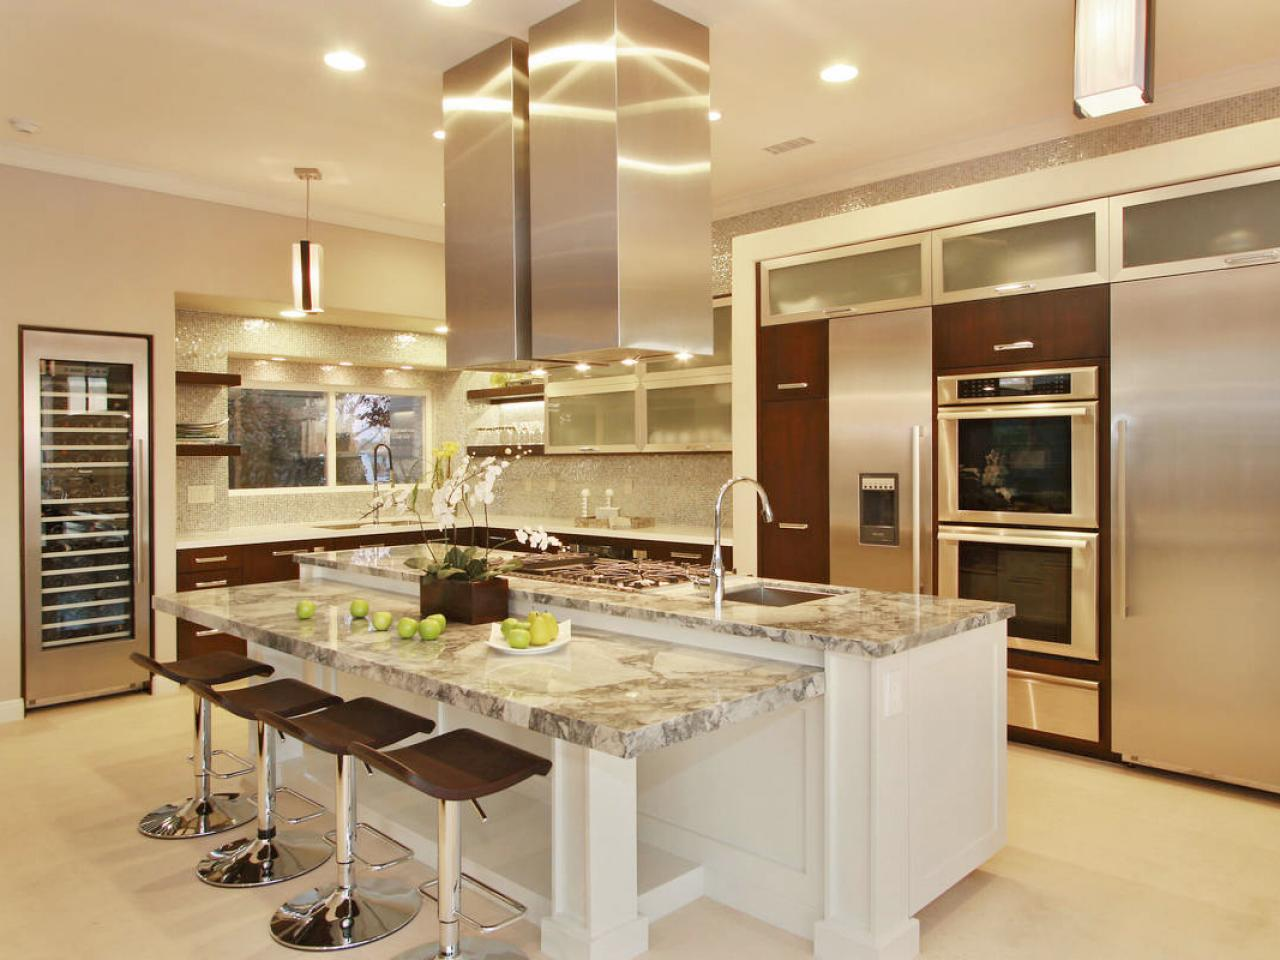 Kitchen layout templates 6 different designs hgtv for Kichan dizain